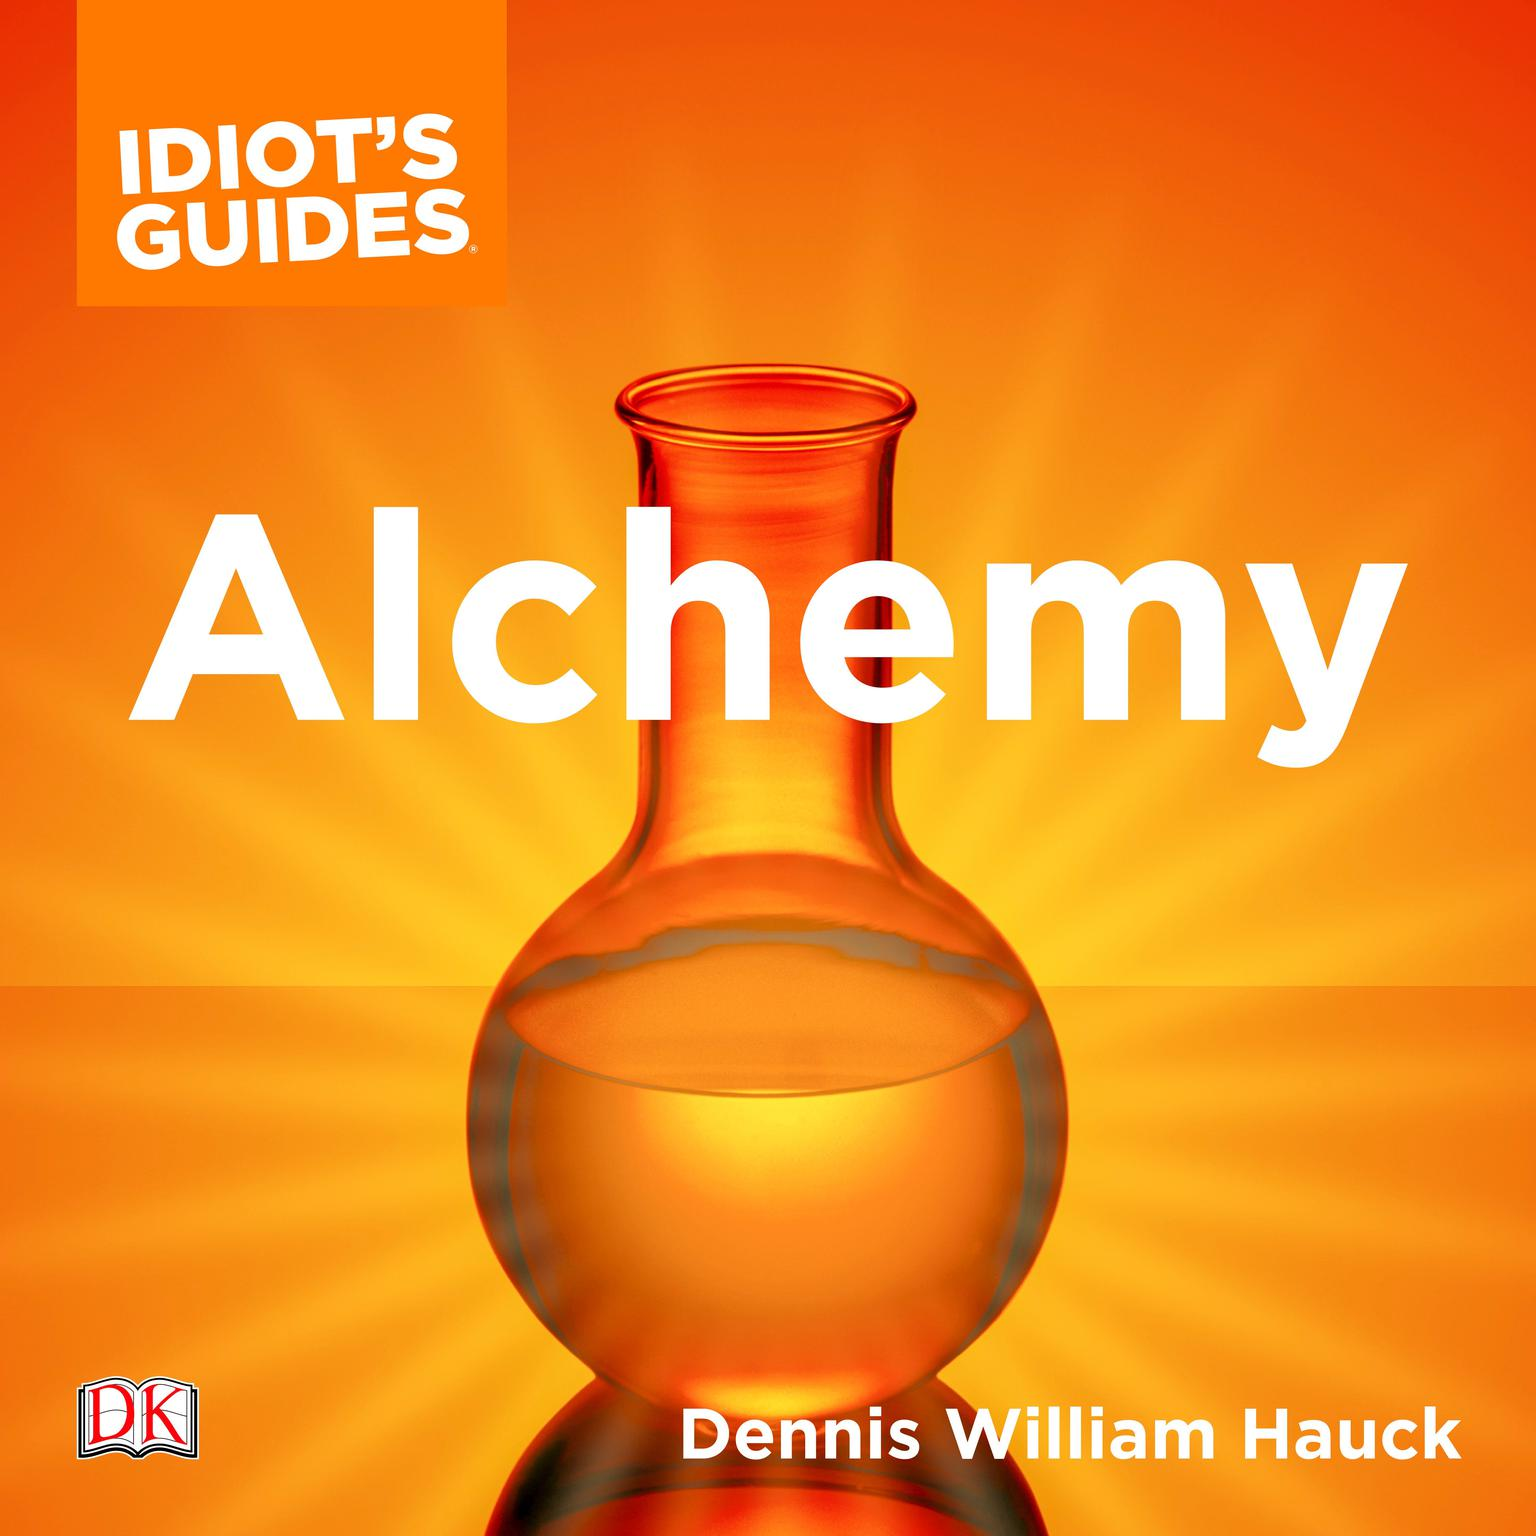 The Complete Idiots Guide to Alchemy: The Magic and Mystery of the Ancient Craft Revealed for Today Audiobook, by Dennis William Hauck